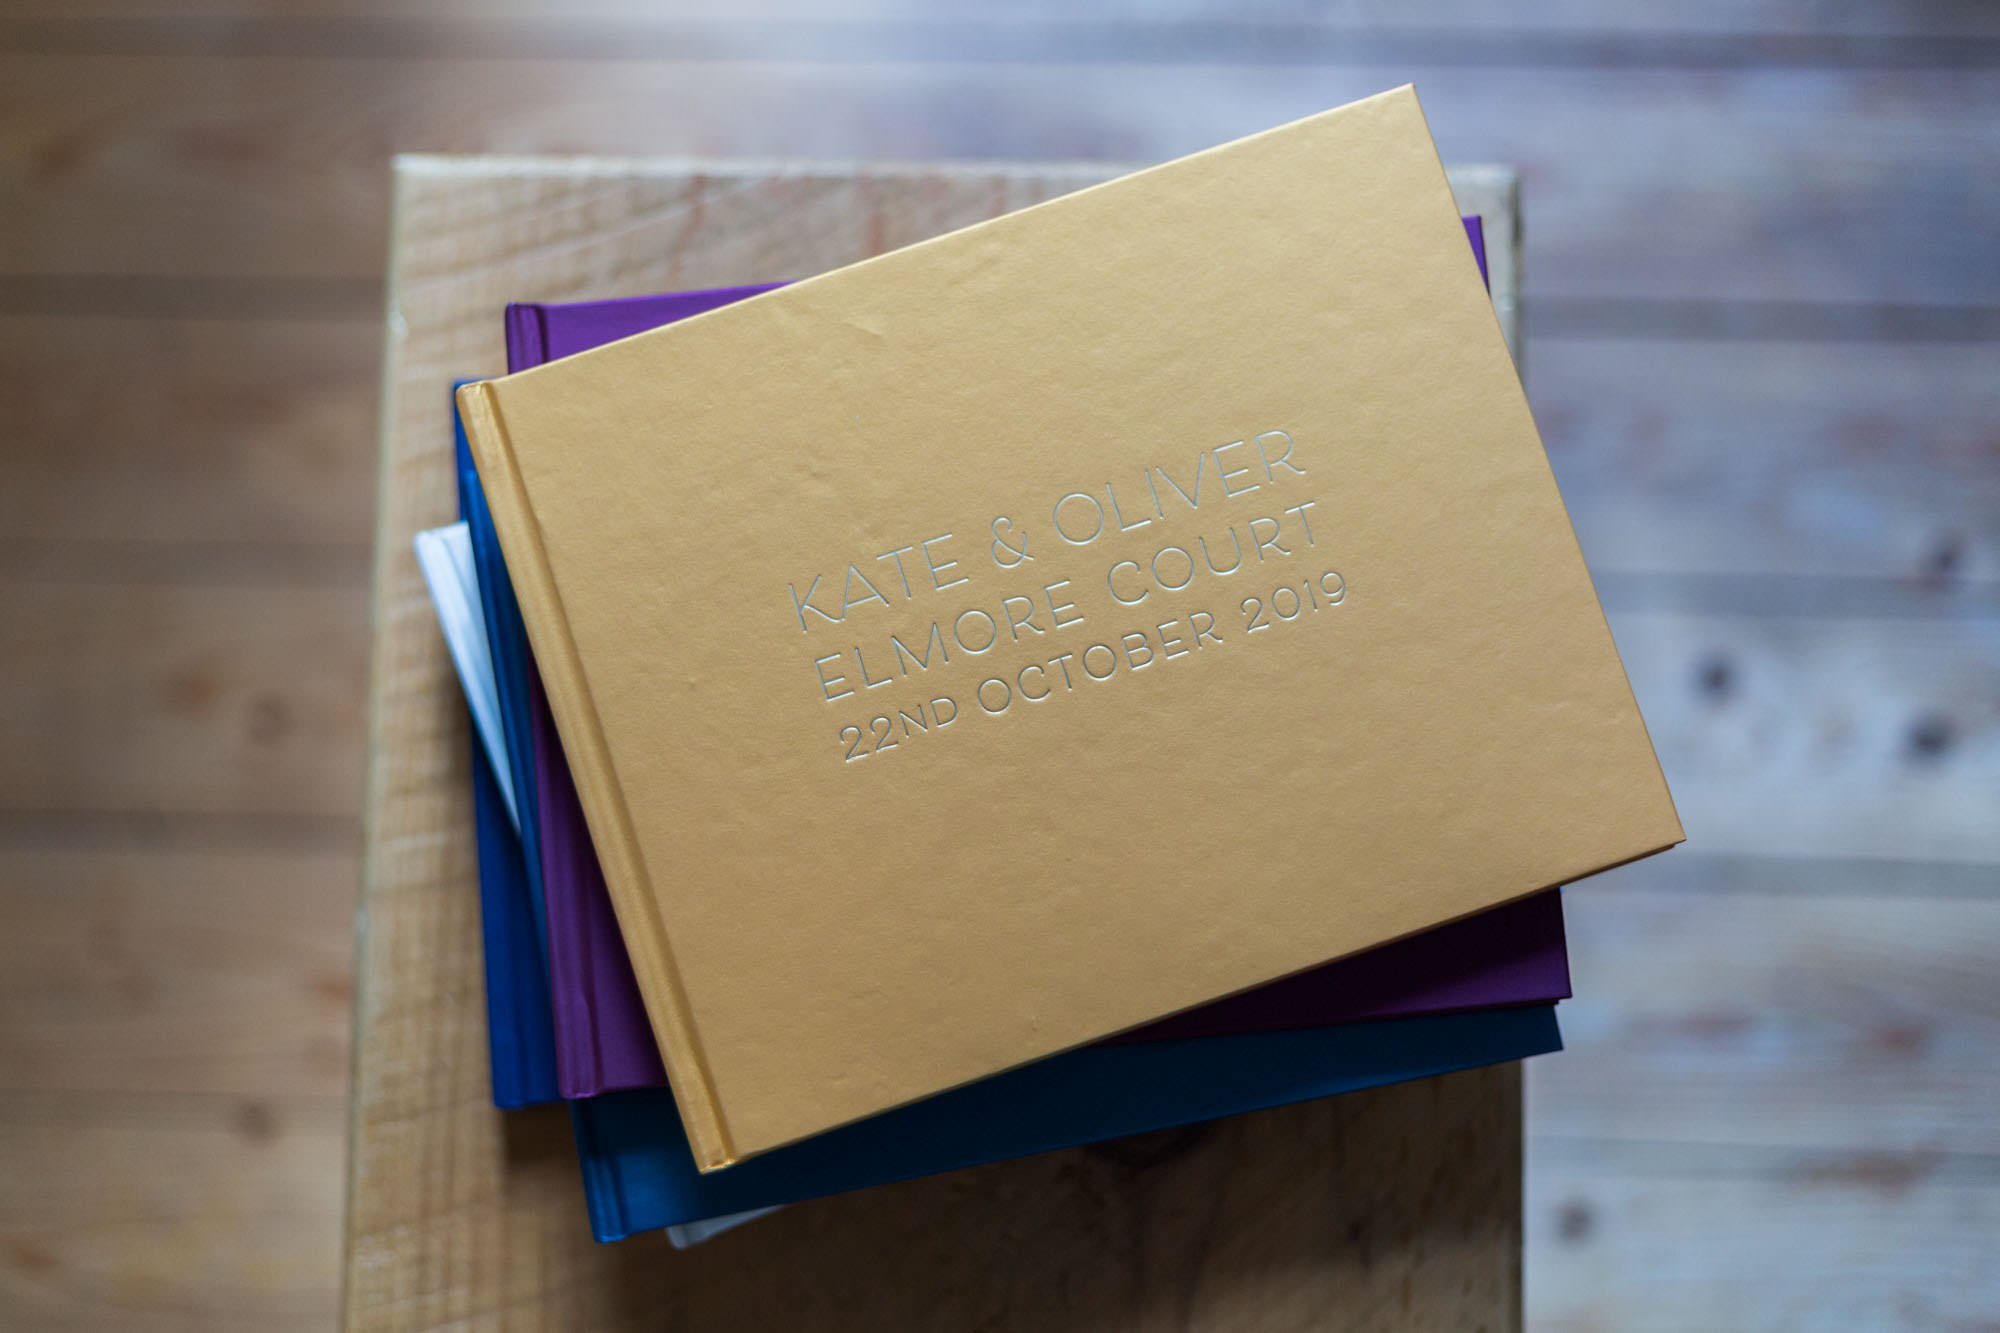 Be Golden - Bespoke wedding guest books + Photo albums